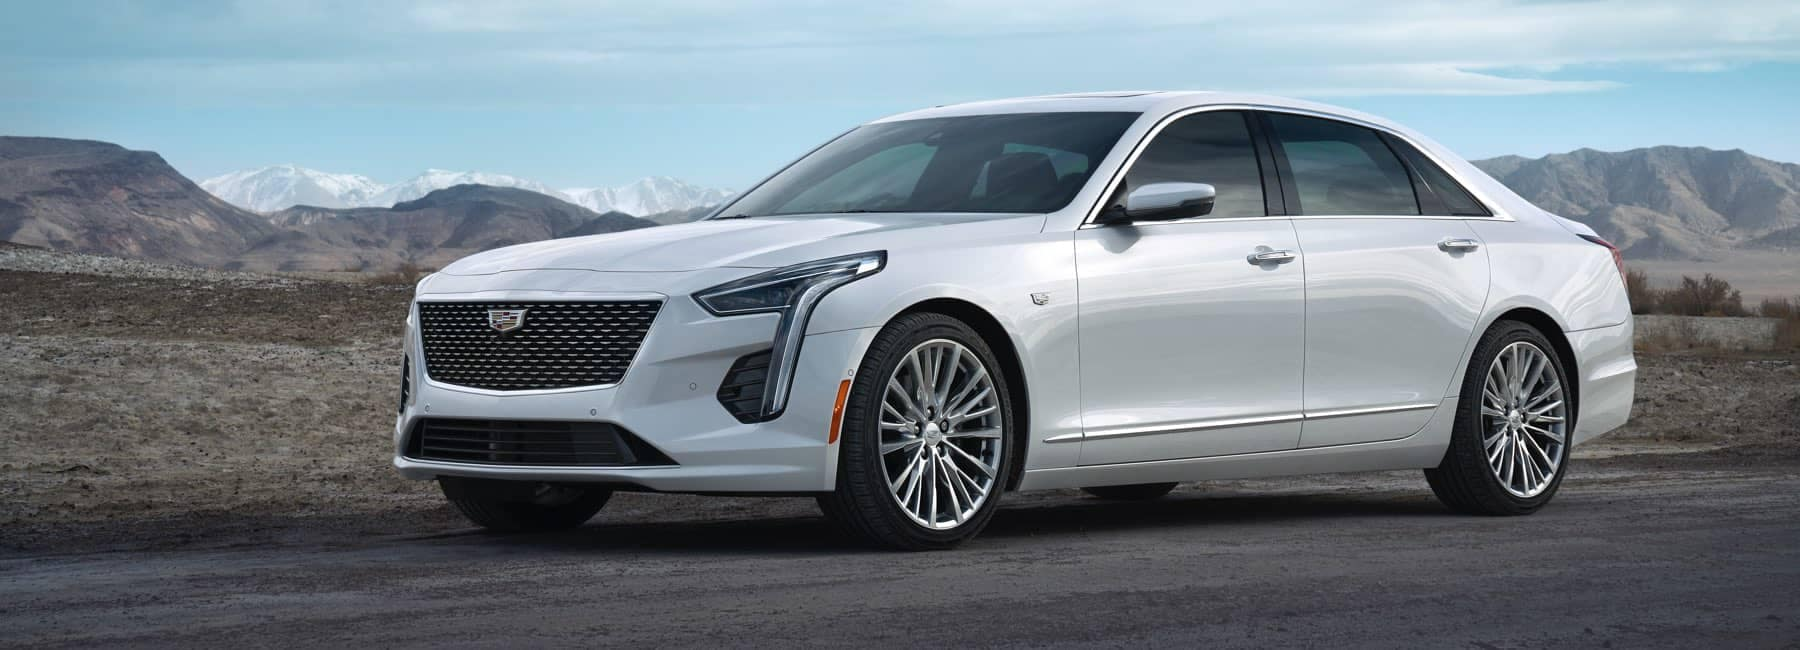 2020 Cadillac CT6 drives down road with mountains in background